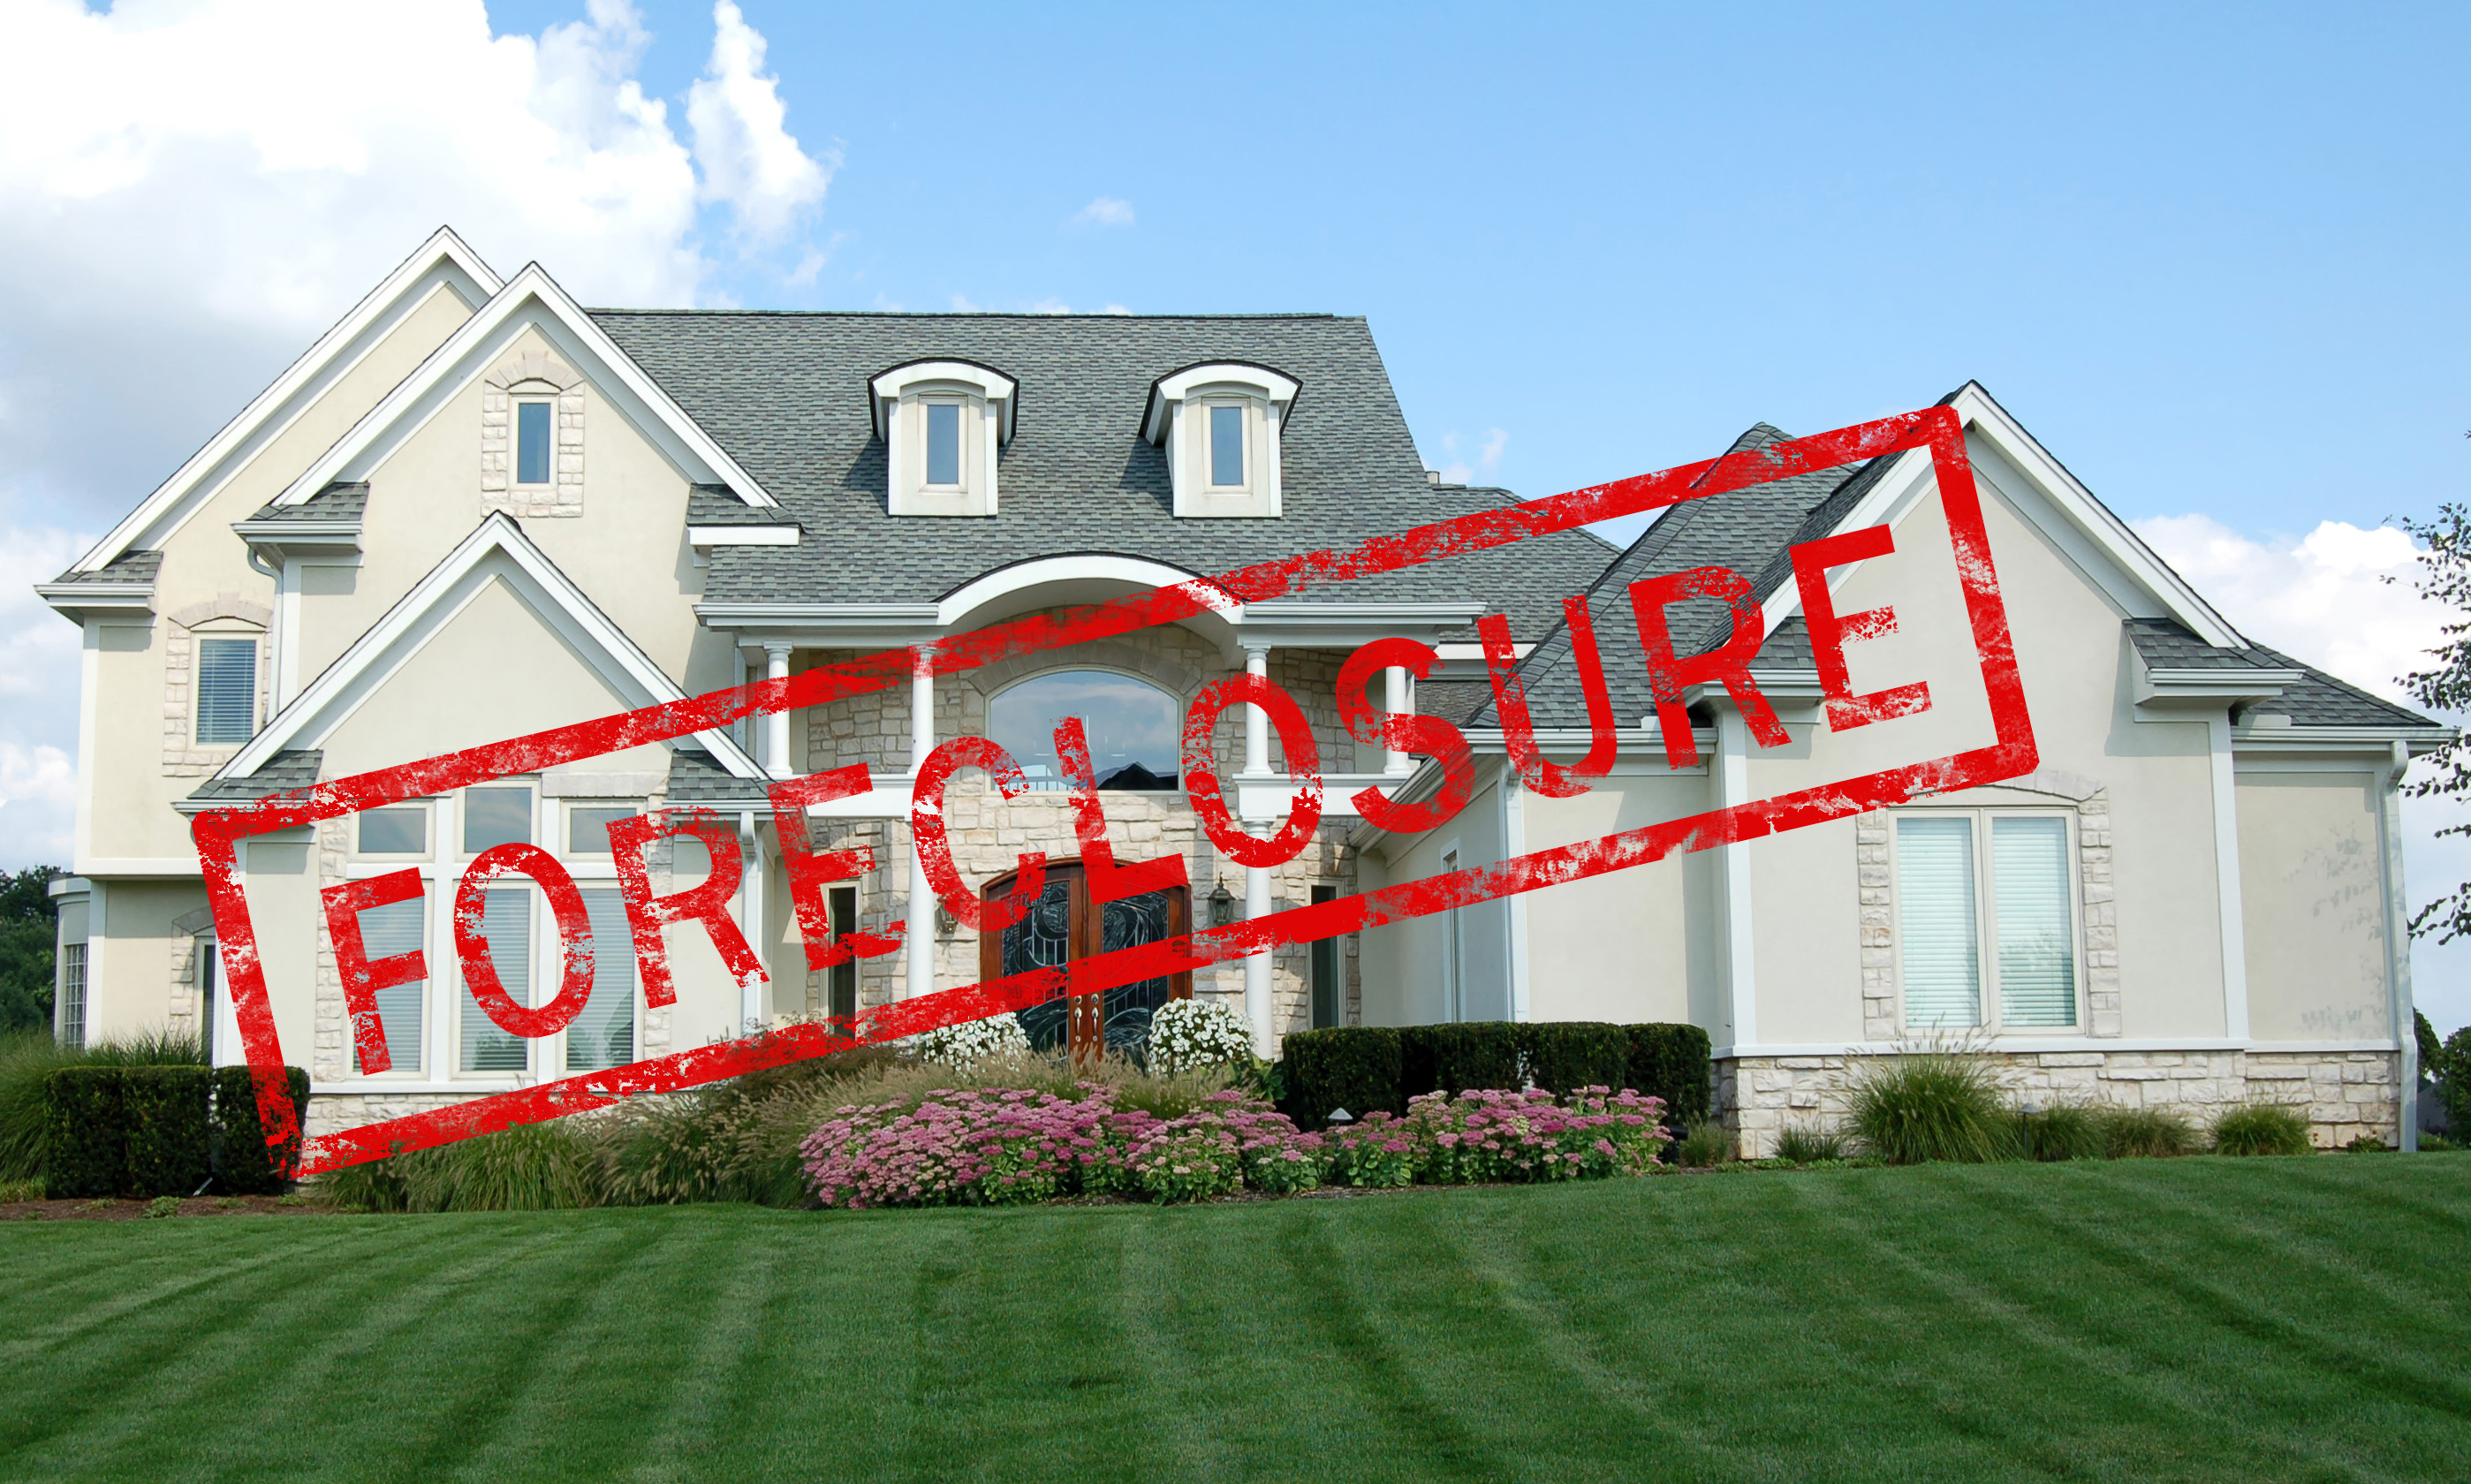 Call Giles Appraisal Group, Inc. to order valuations for Bay foreclosures